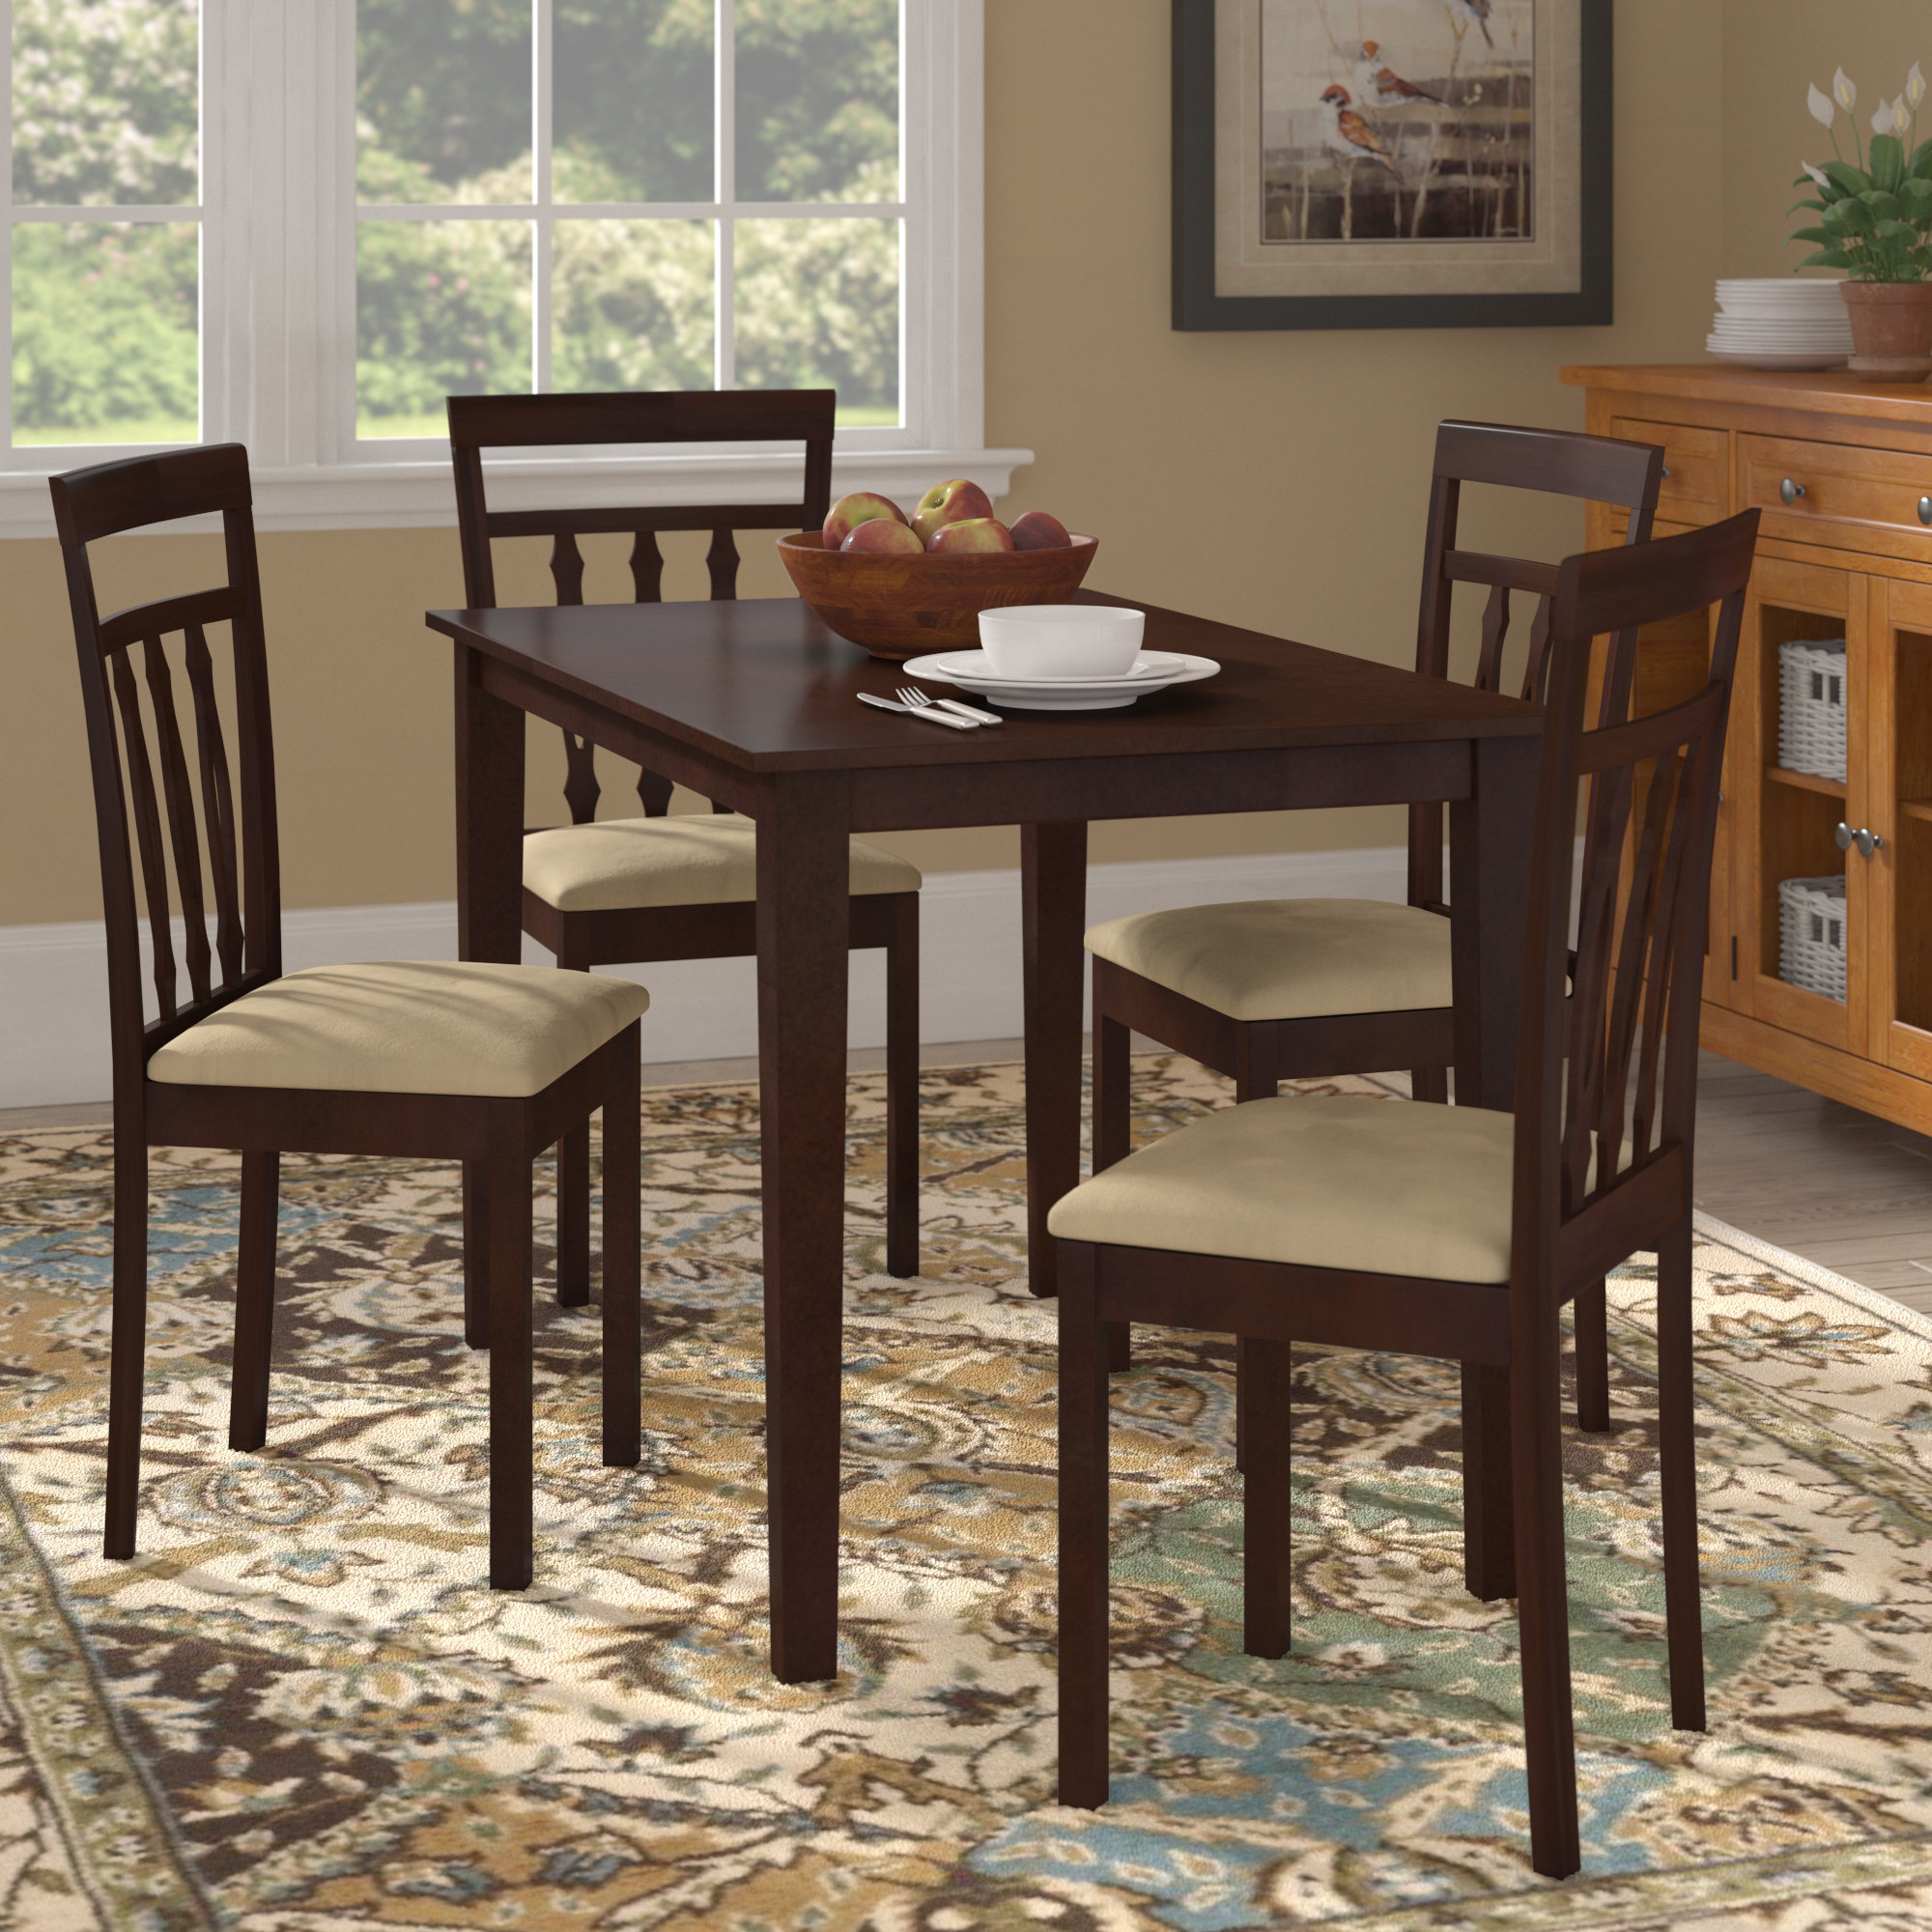 Well Liked Baillie 3 Piece Dining Sets Within Vivien 5 Piece Dining Set (View 19 of 20)